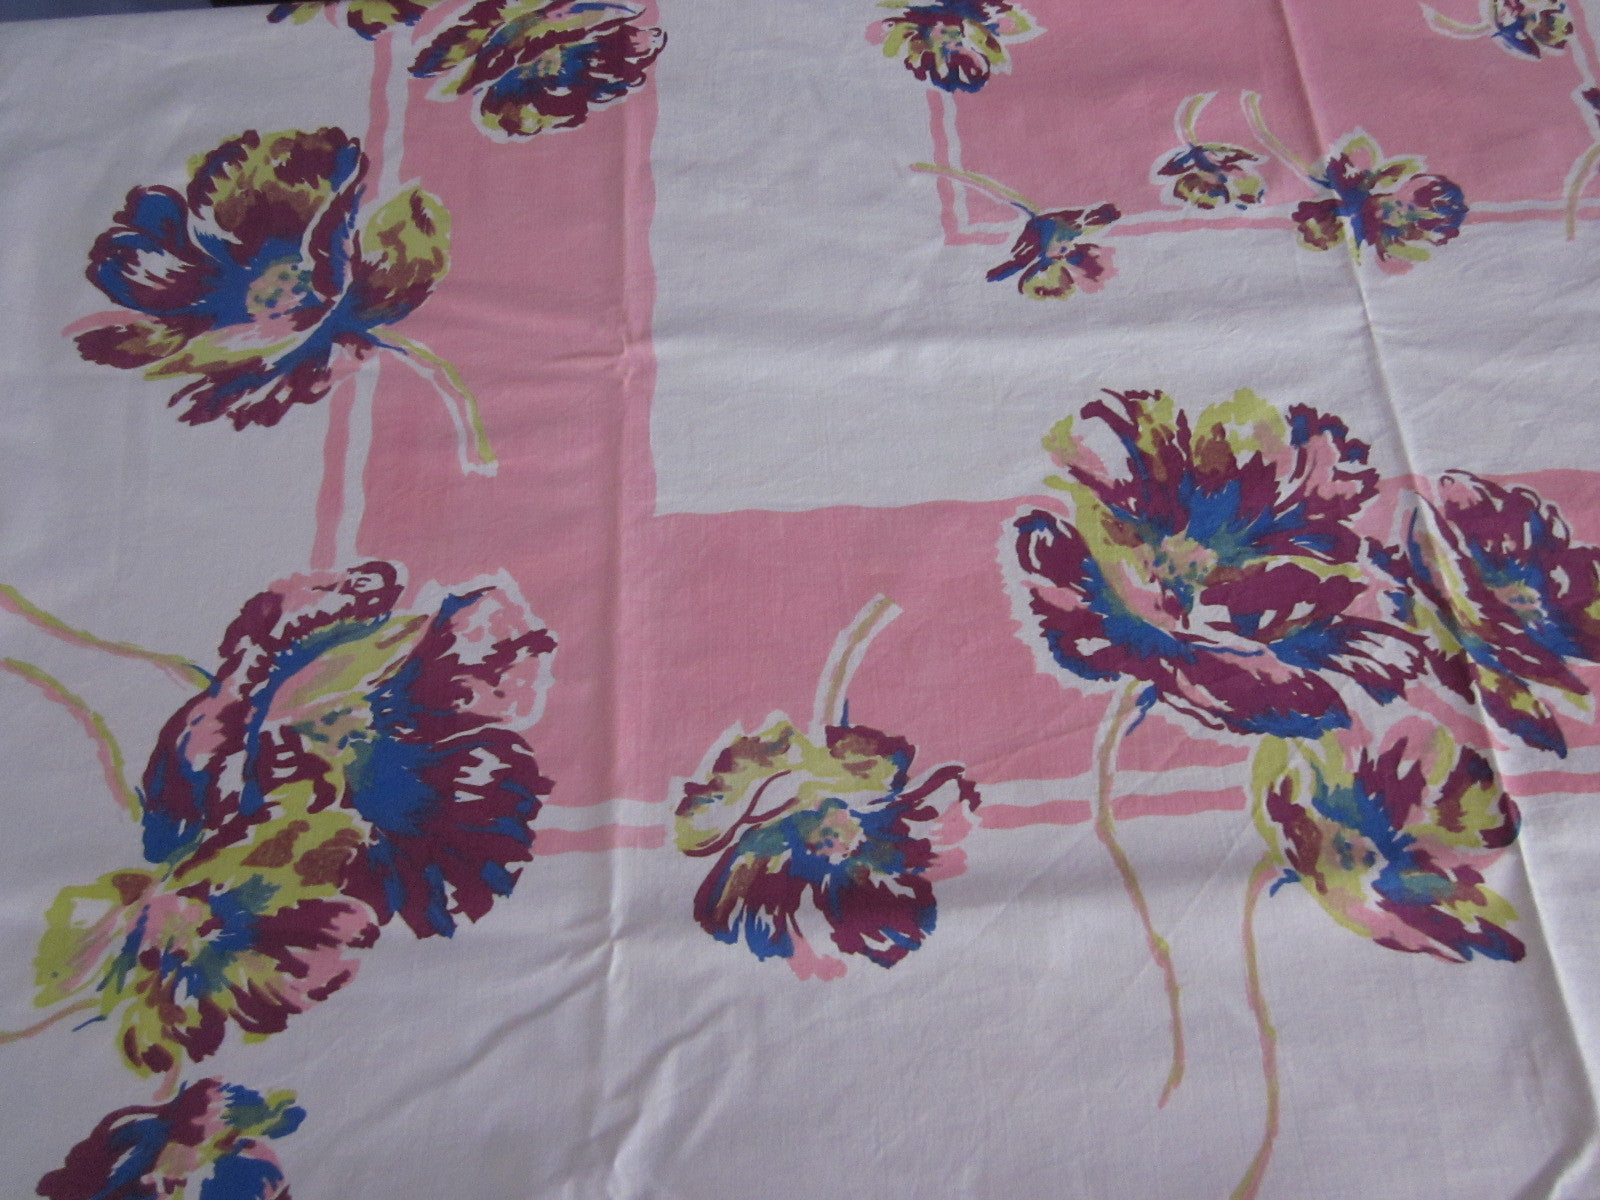 Poppies on Pink Sheeting Floral Vintage Printed Tablecloth (49 X 48)